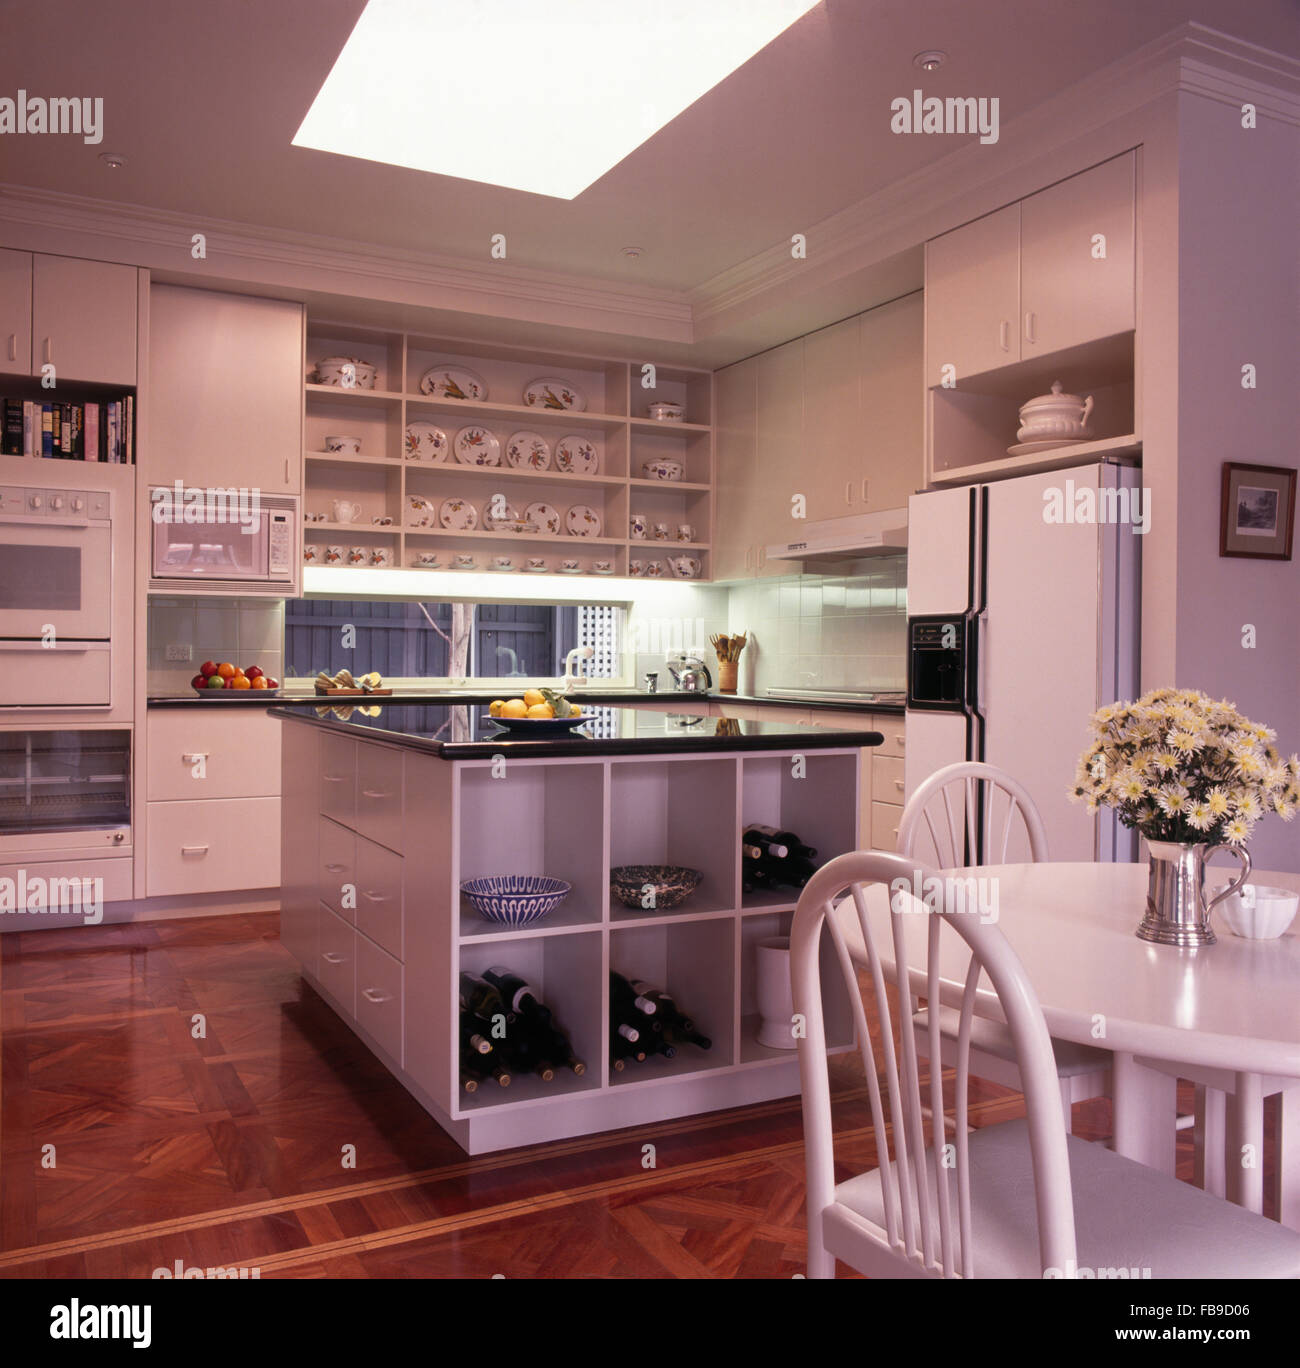 American style kitchen - Stock Photo White Dining Table And Chairs And An American Style Fridge Freezer In A White Kitchen With Open Cube Shelves In Island Unit